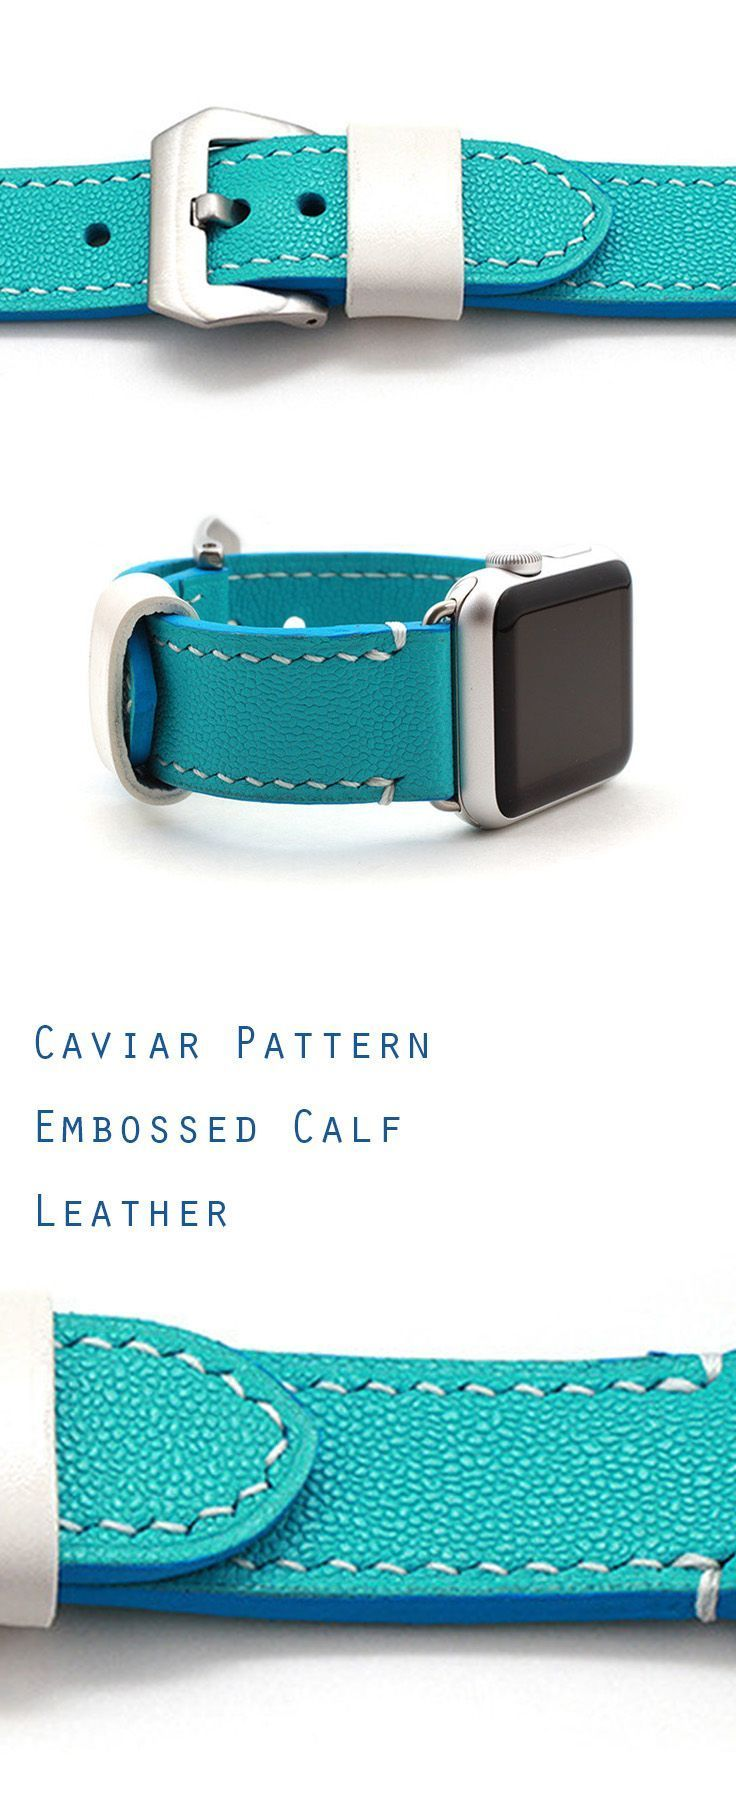 Apple Watch strap band in Caviar Pattern Embossed calf AQUA BLUE (turquoise) leather watch band, Apple Watch Strap, iWatch band, Leather Watch band, 42mm, 38mm, iWatch Strap